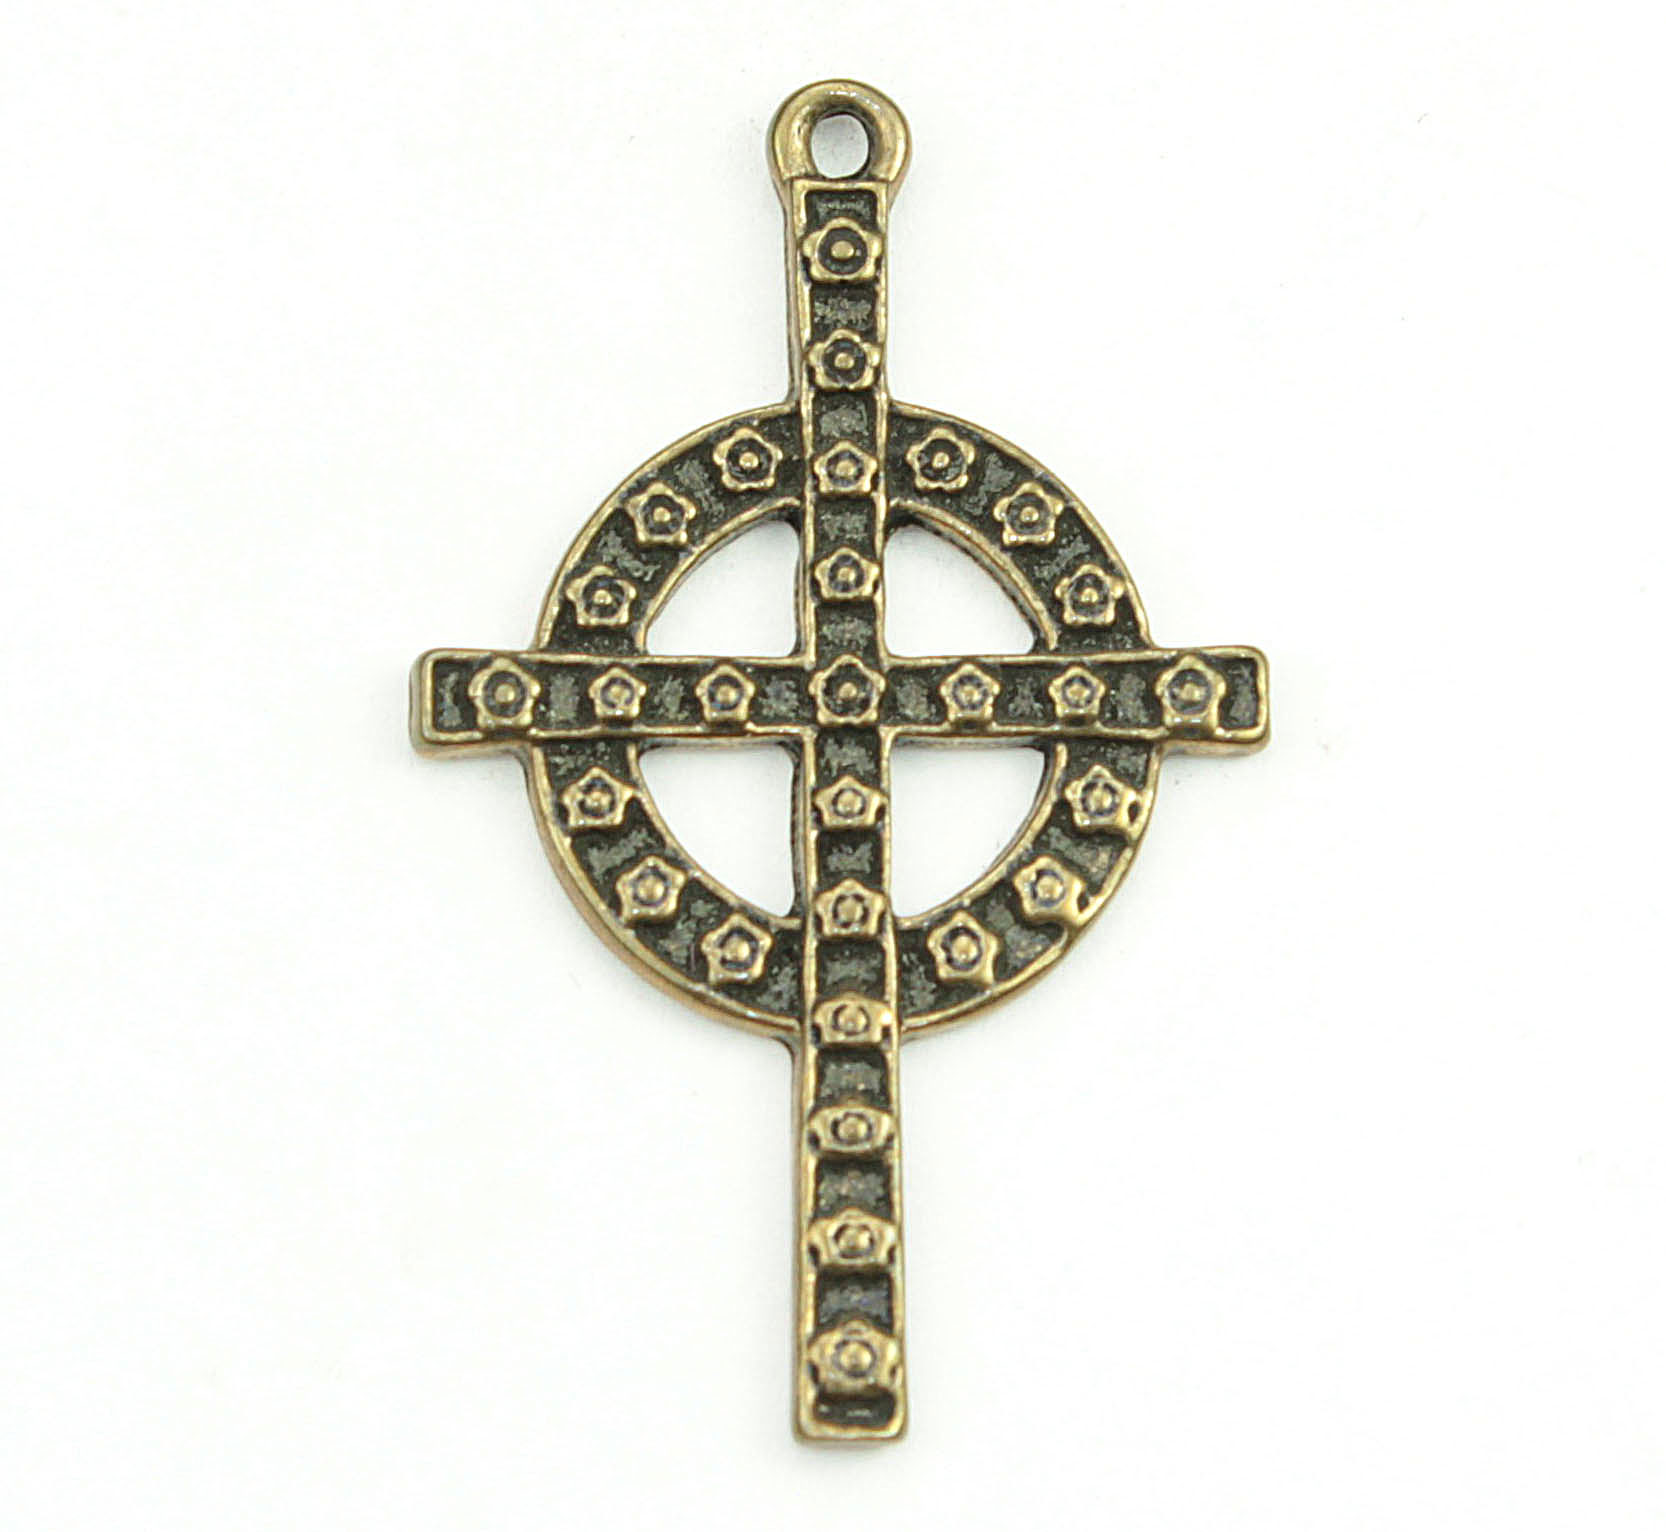 christianity products eastern tone pendant handmade de silver fast shipping l vintage heavy fullxfull a middle il jewelry sterling two jerusalem cross